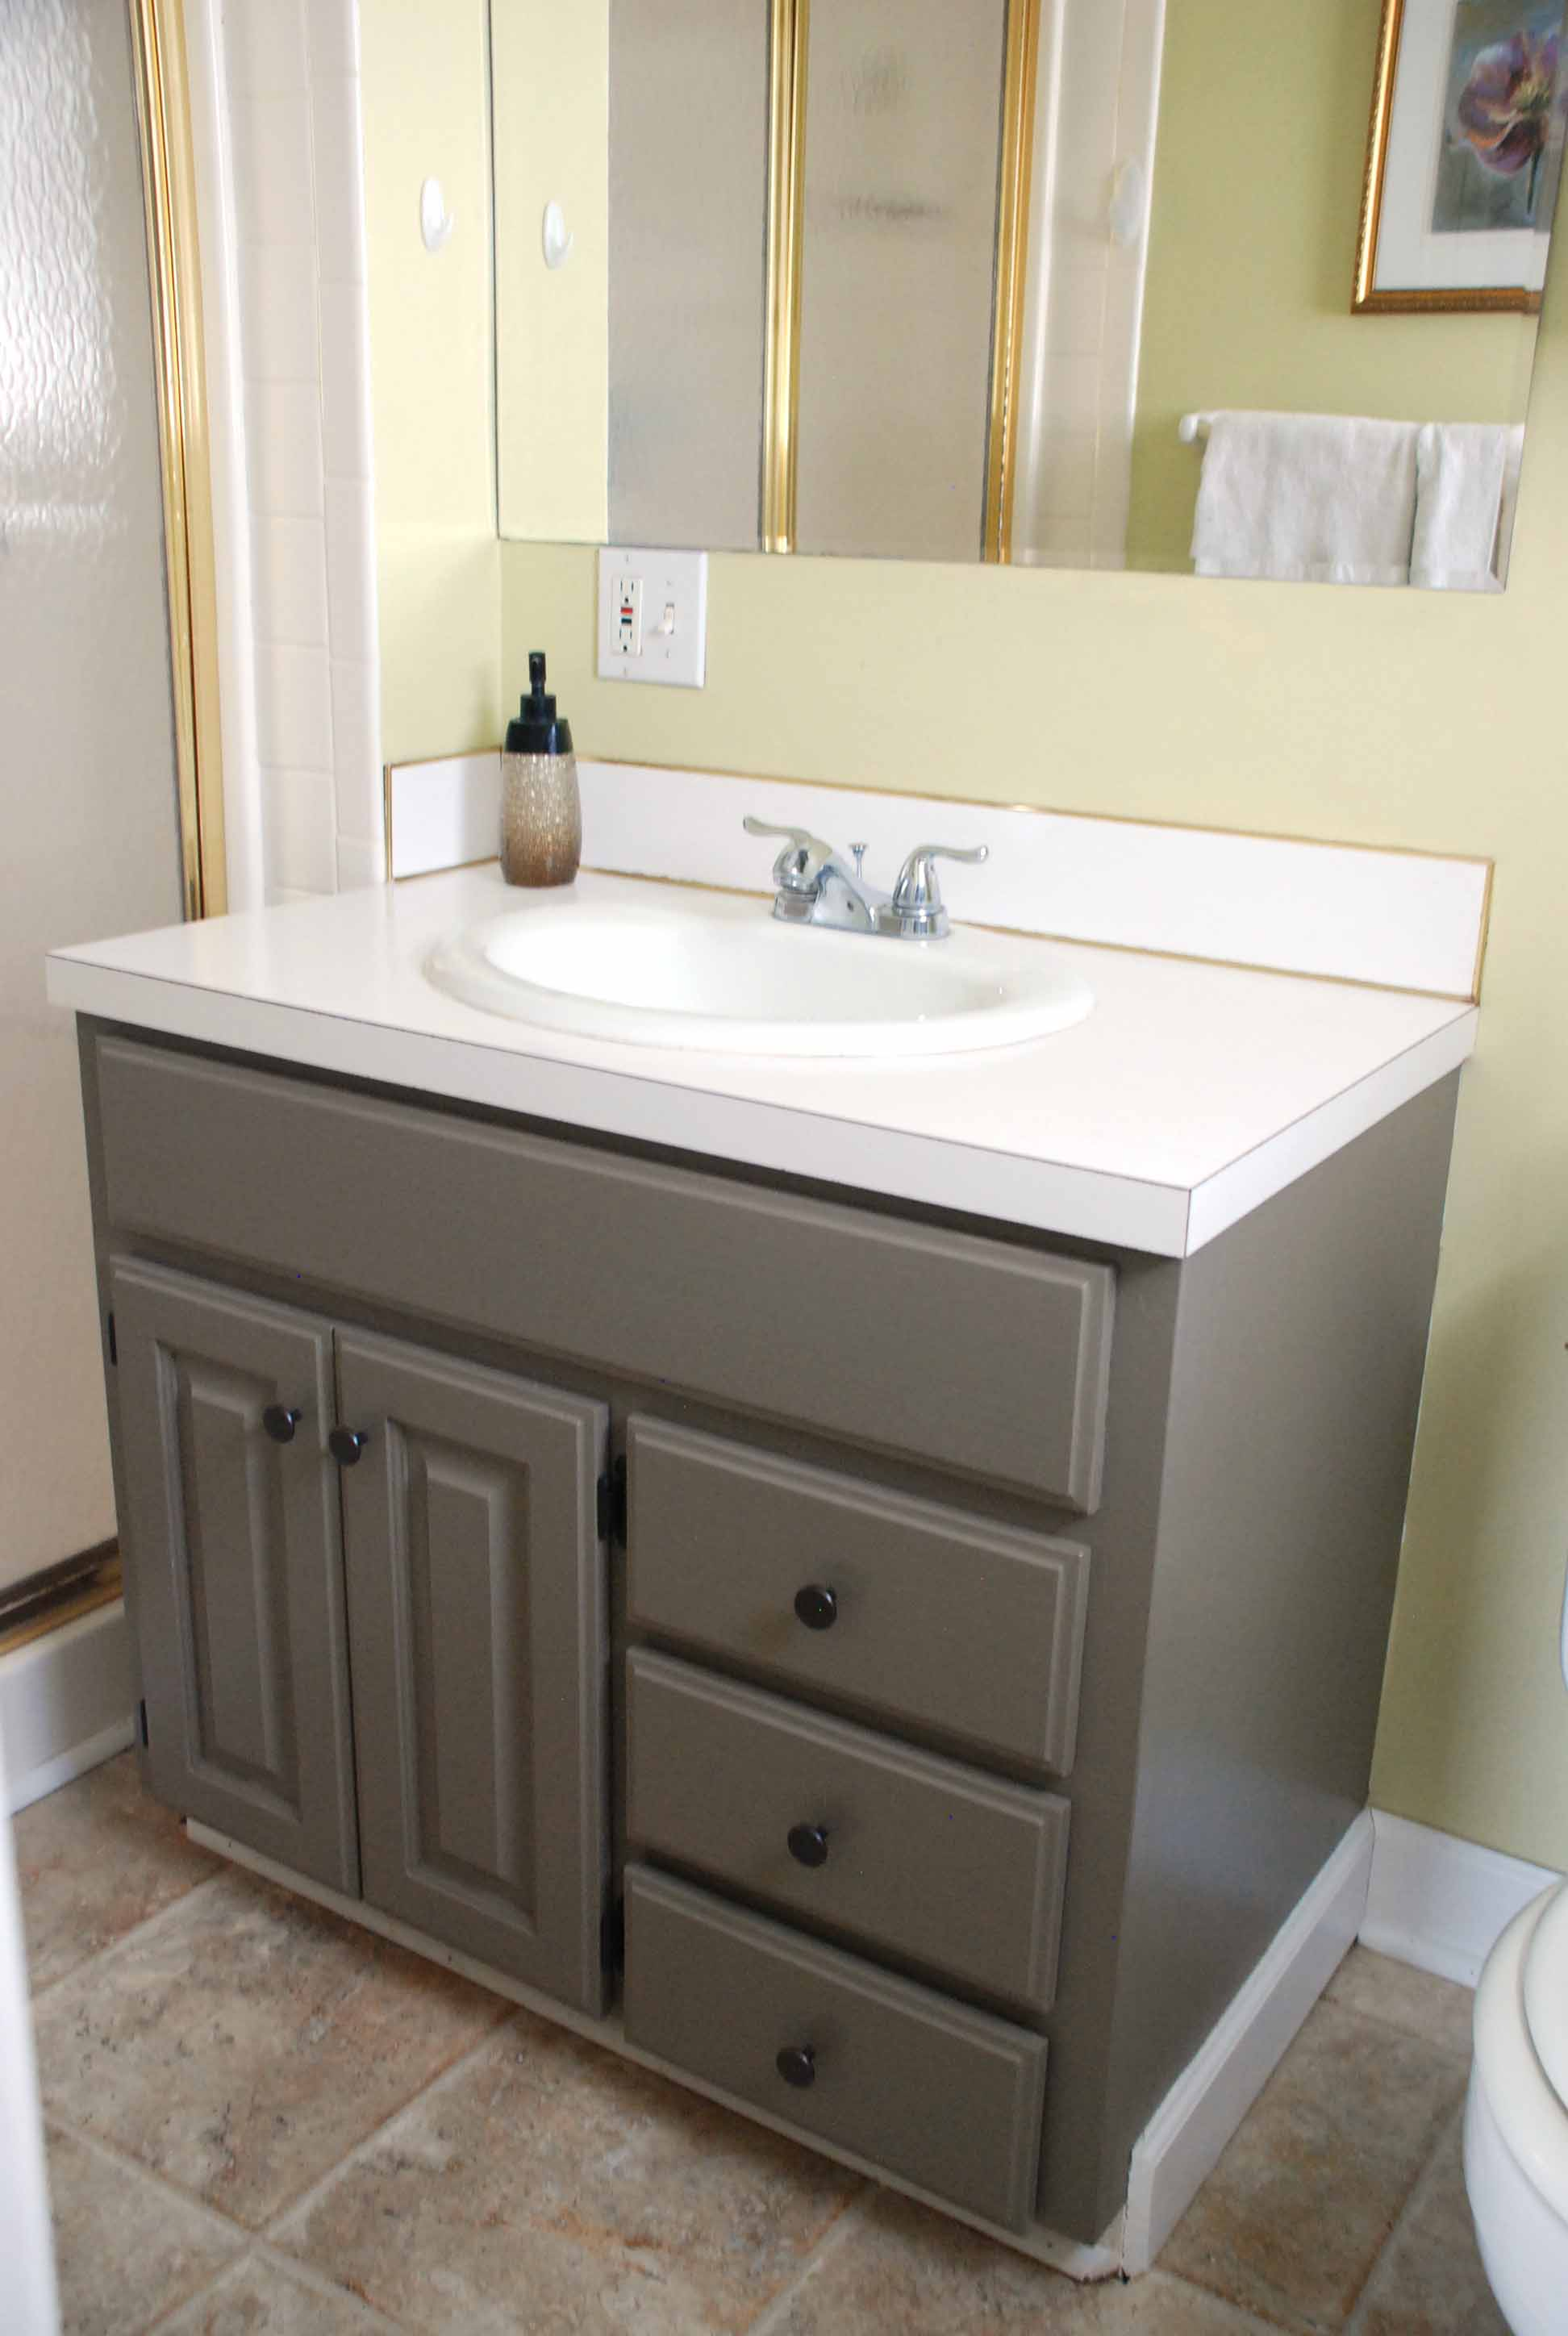 Painting A Bathroom Vanity And Cabinet And Spray Painting Hardware One Cherry Tree Lane